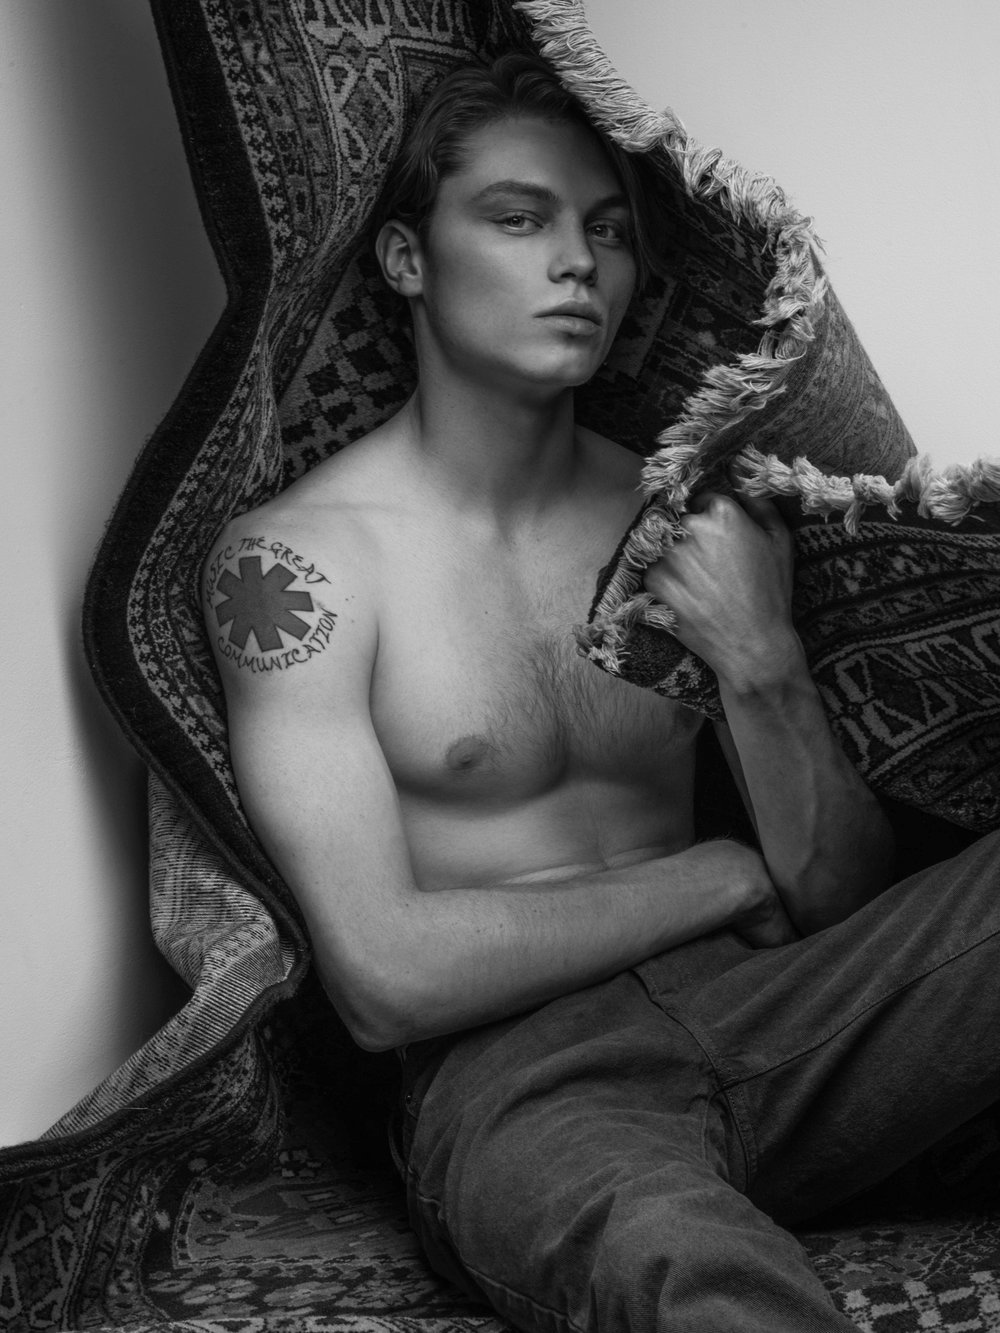 Benjamin Helfert, Model Citizen Magazine